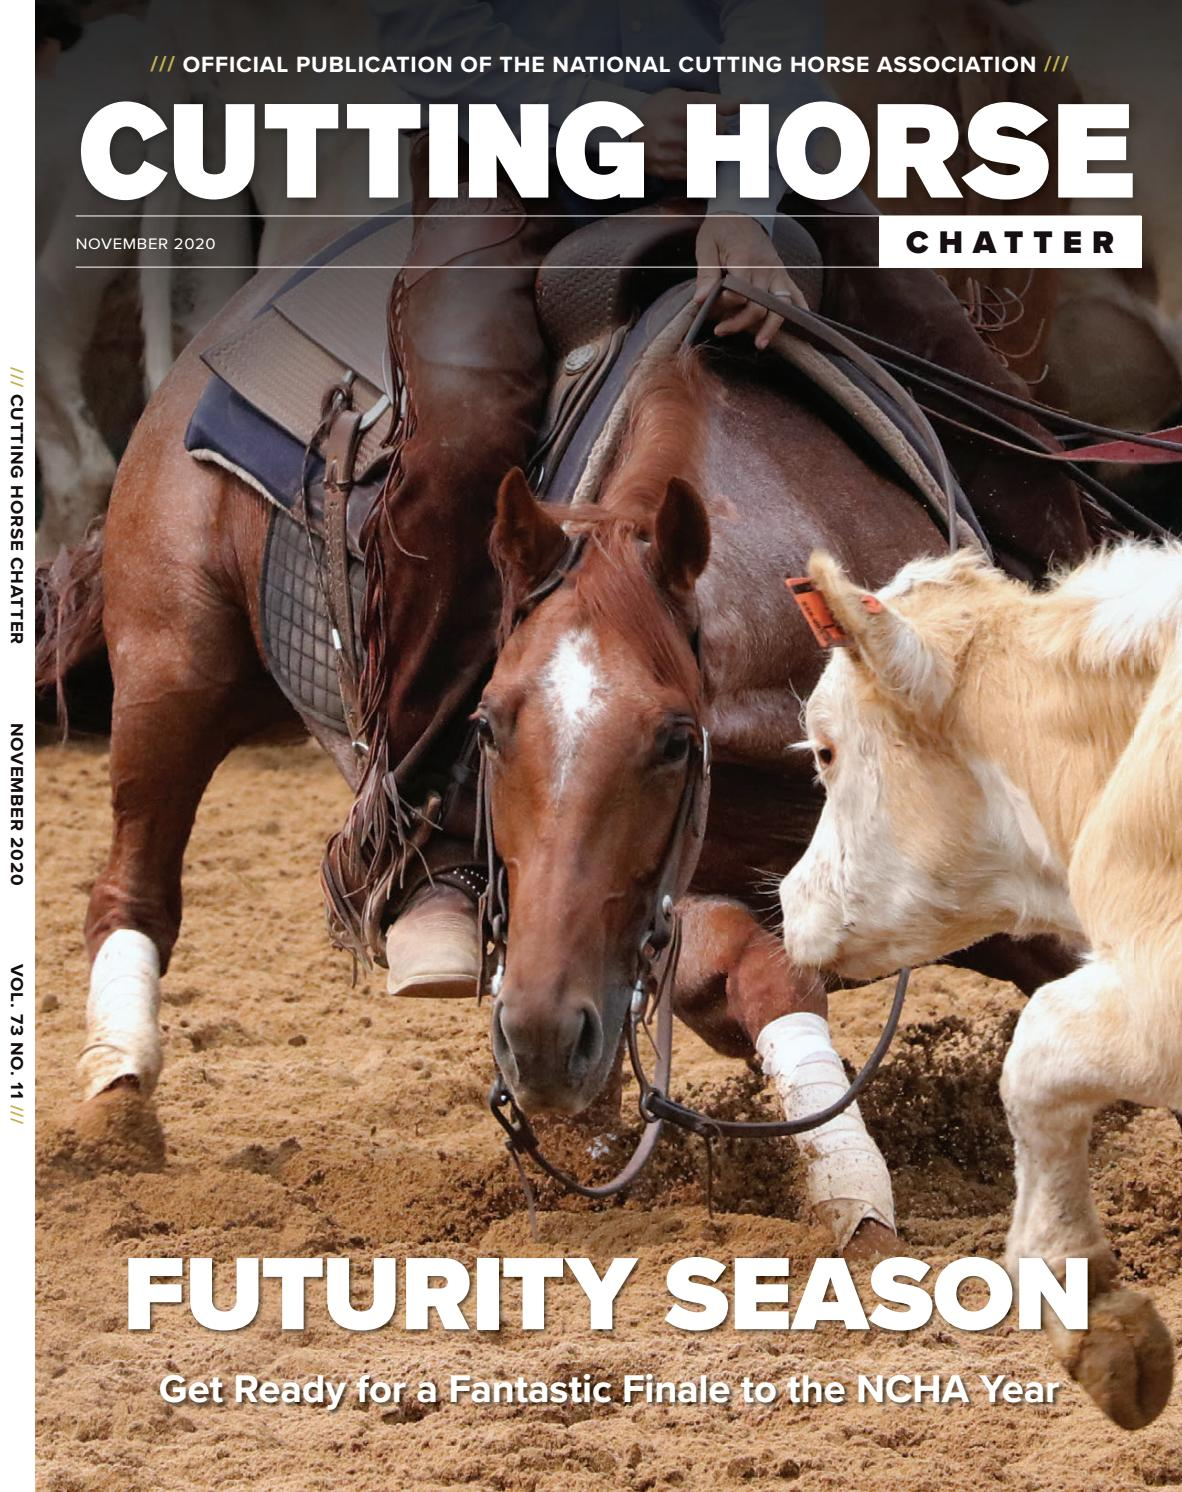 NCHA Cutting Horse Chatter • November 2020 • Vol. 73. No. 11 by